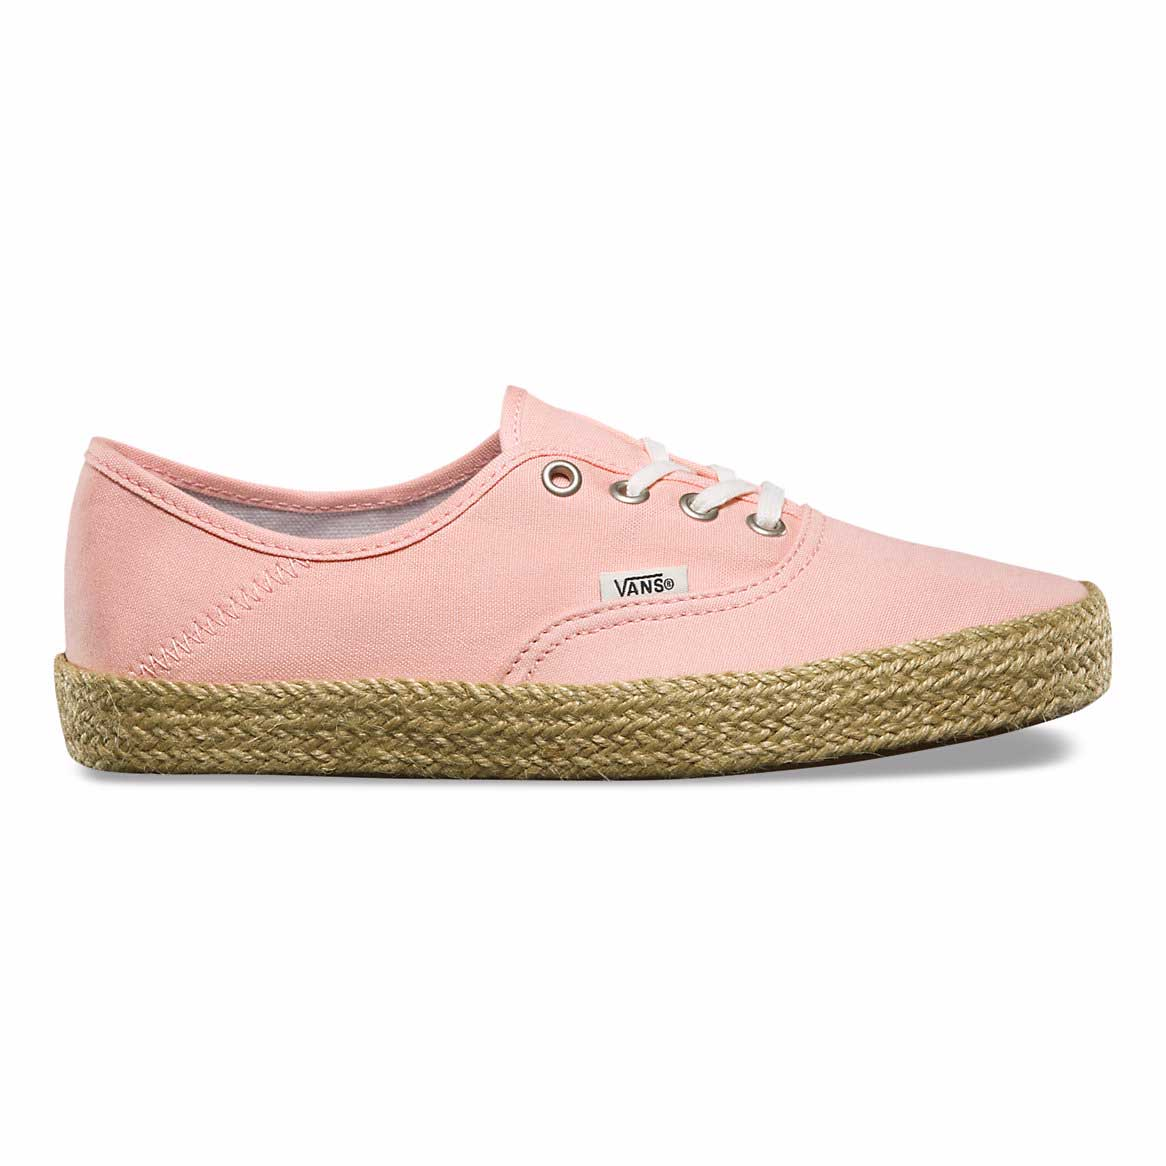 a8081f019783 FOR HER  VANS WOMEN AUTHENTIC ESPADRILLE - The Rebel Dandy